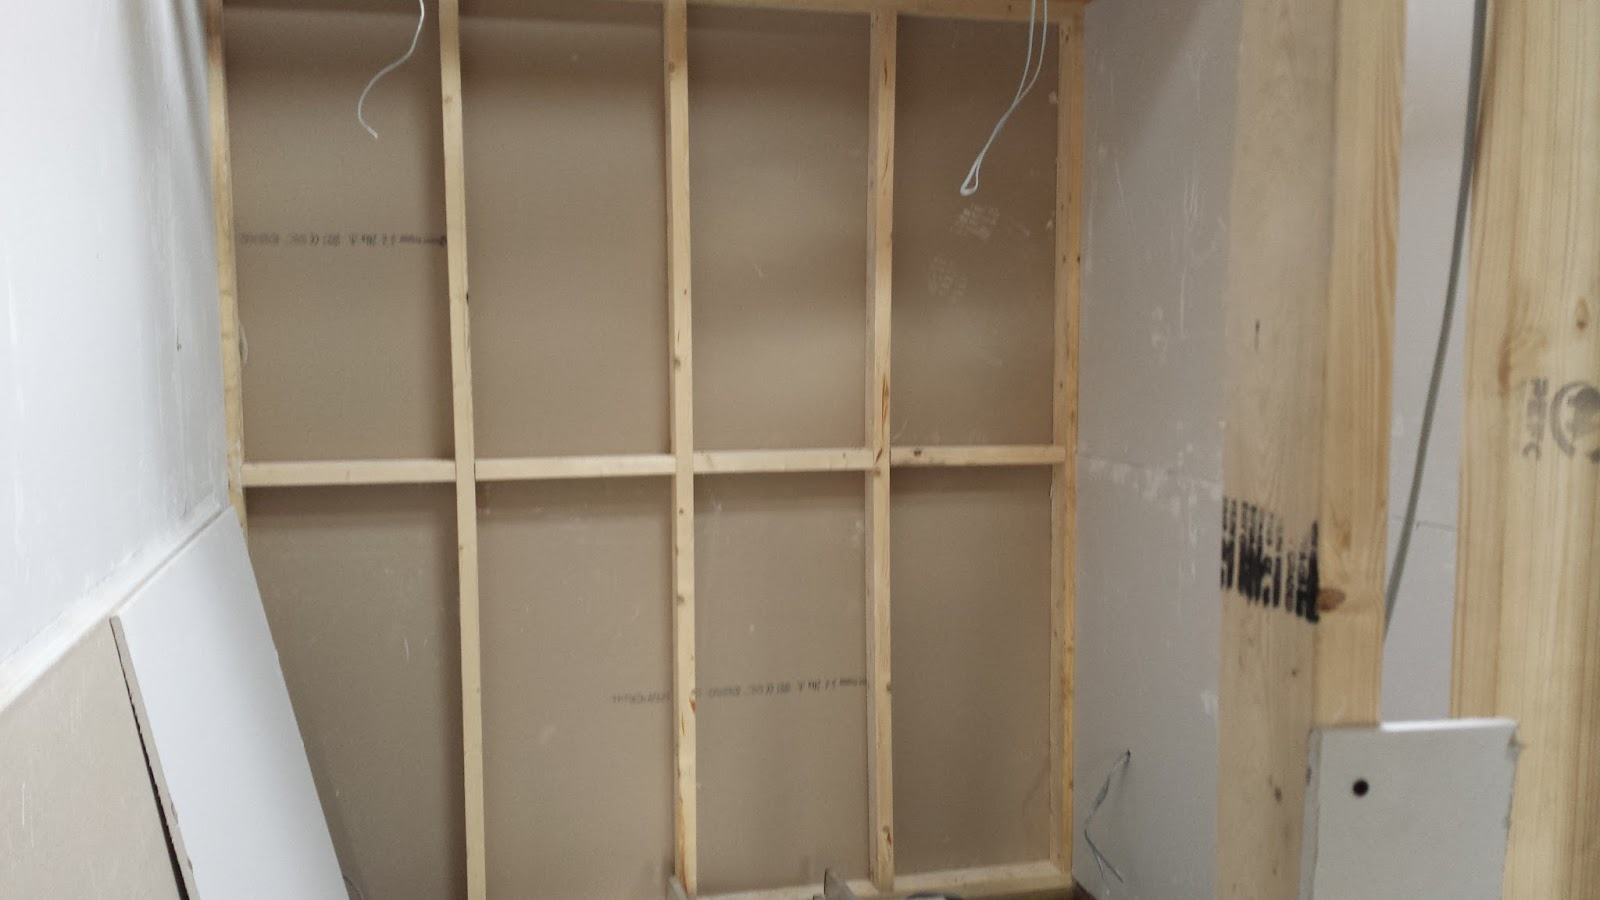 How To Run Cables Through Wall To Downstairs Room